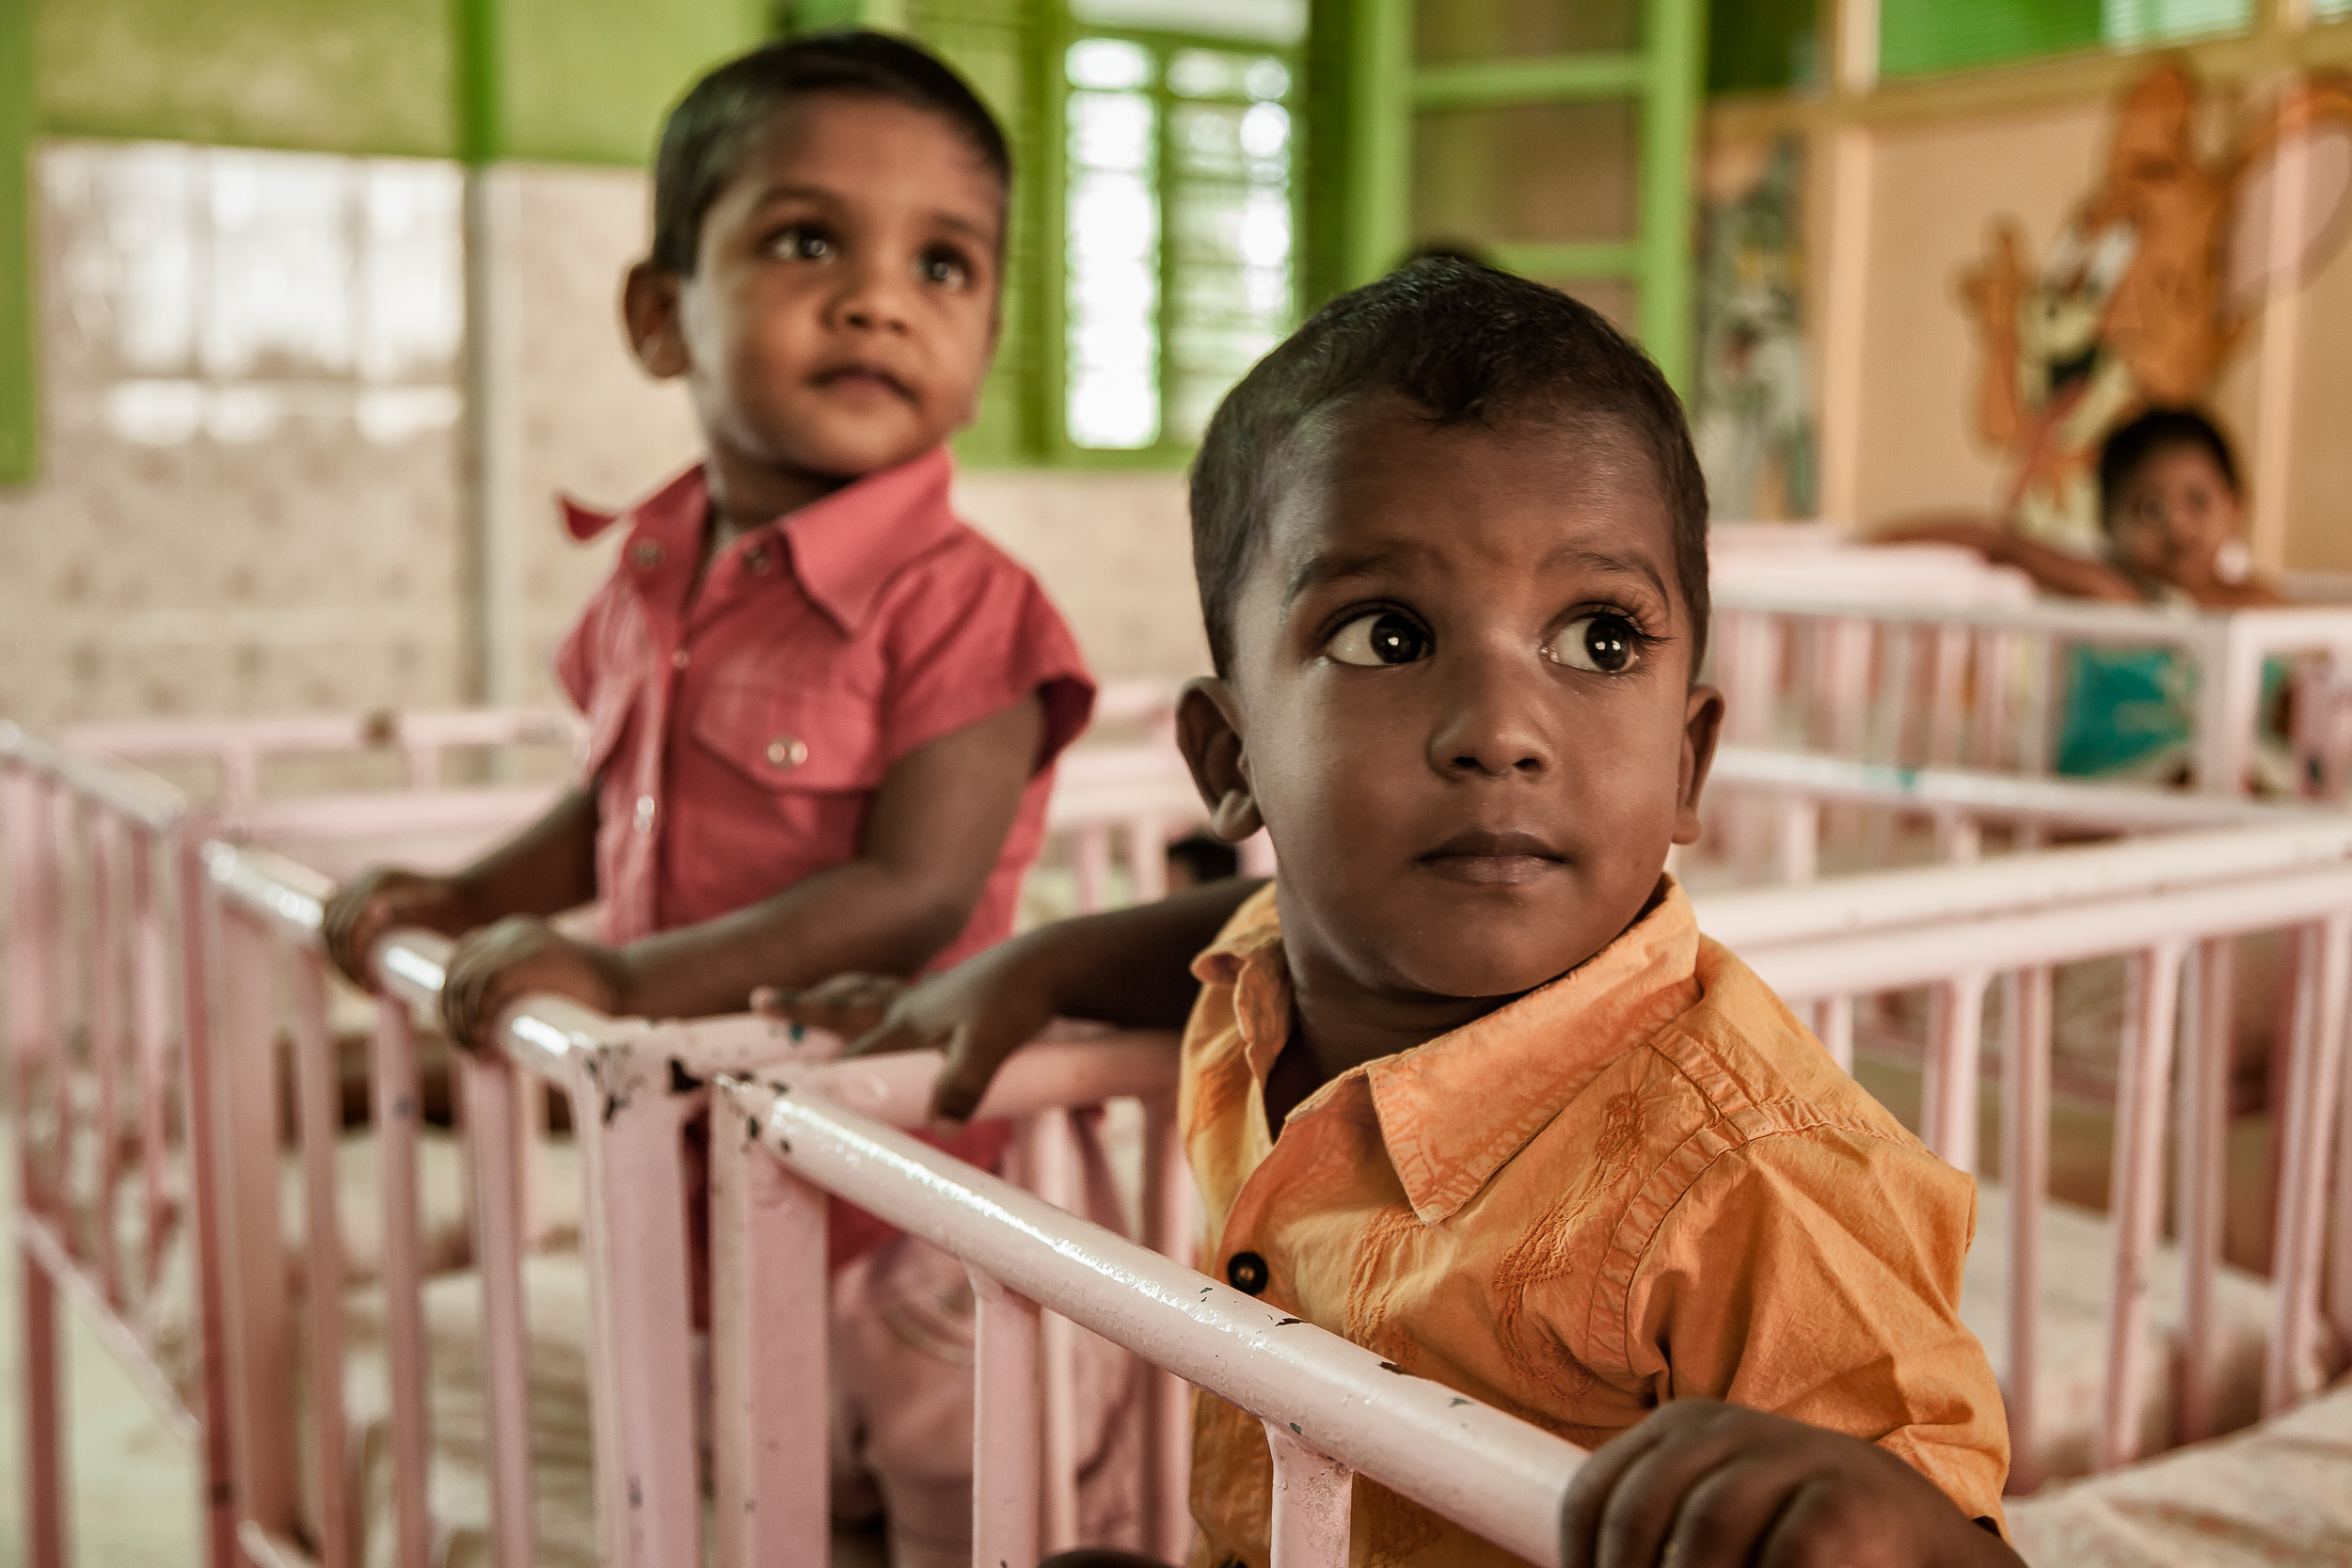 Children, just before their daytime nap, in a    nursery    on    St. Thomas Mount    in    Chennai, India   .